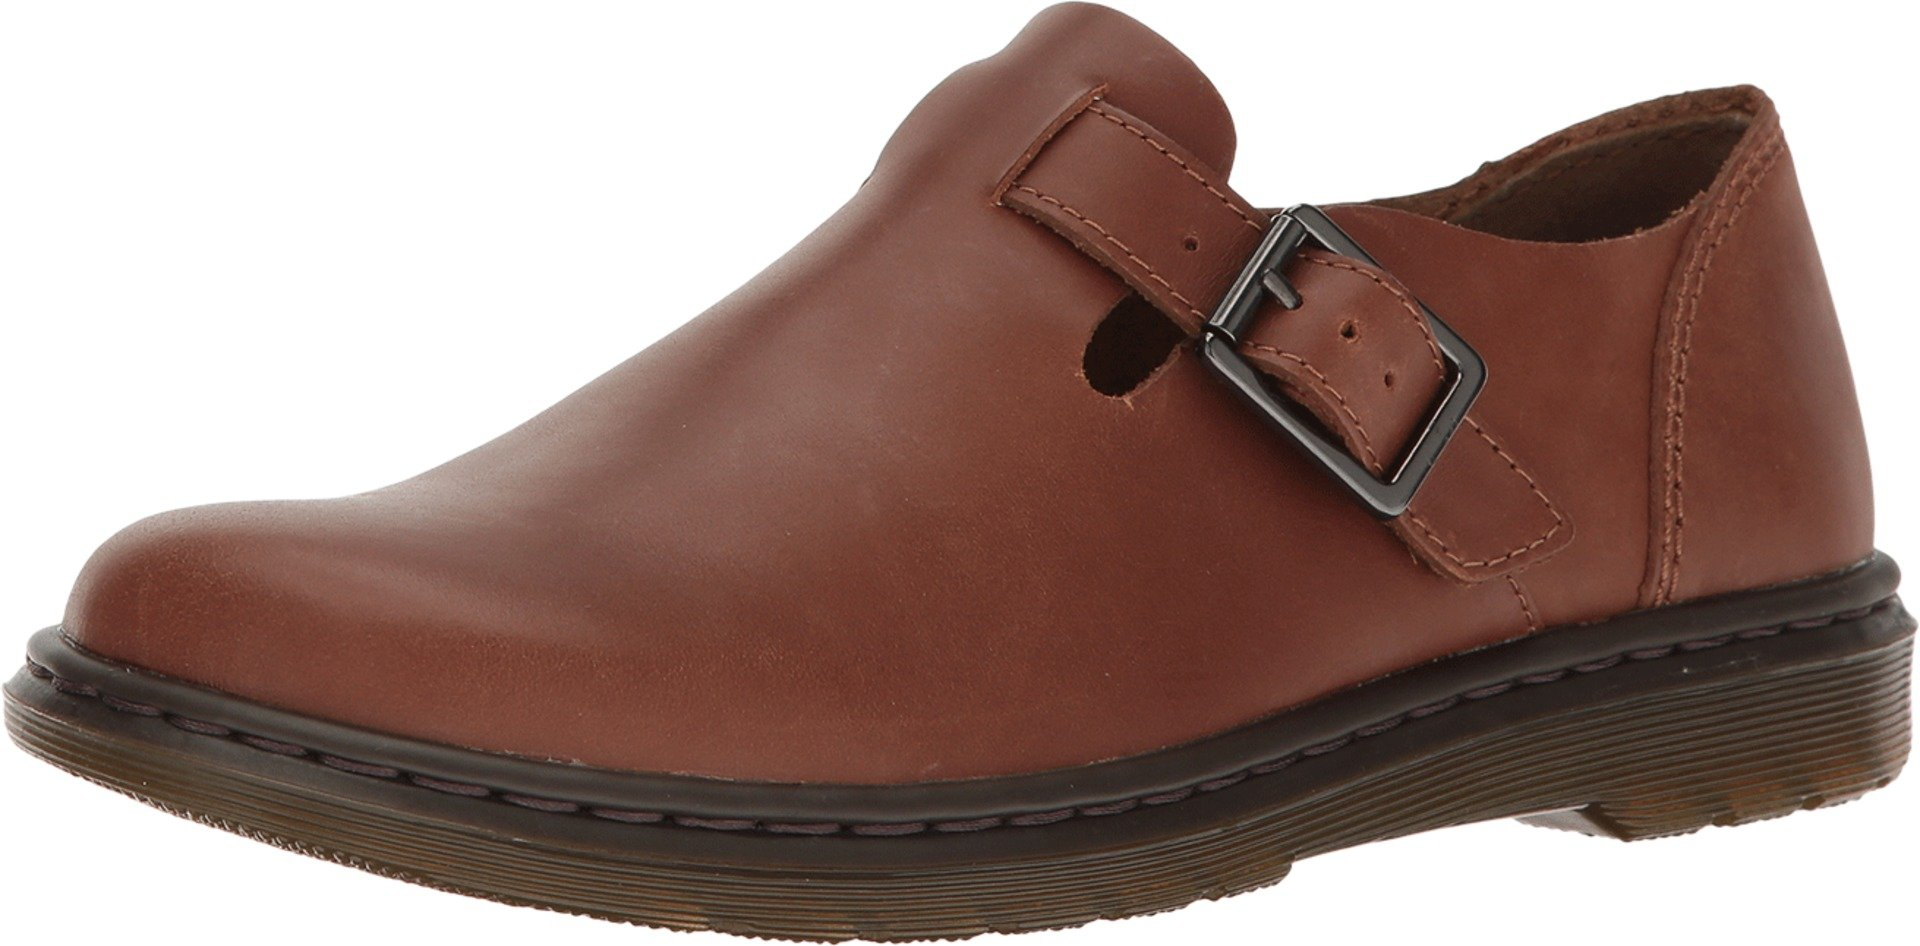 Dr. Martens Women's Patricia Buckle Loafers, Tan, Leather, 9 M UK, 11 M US